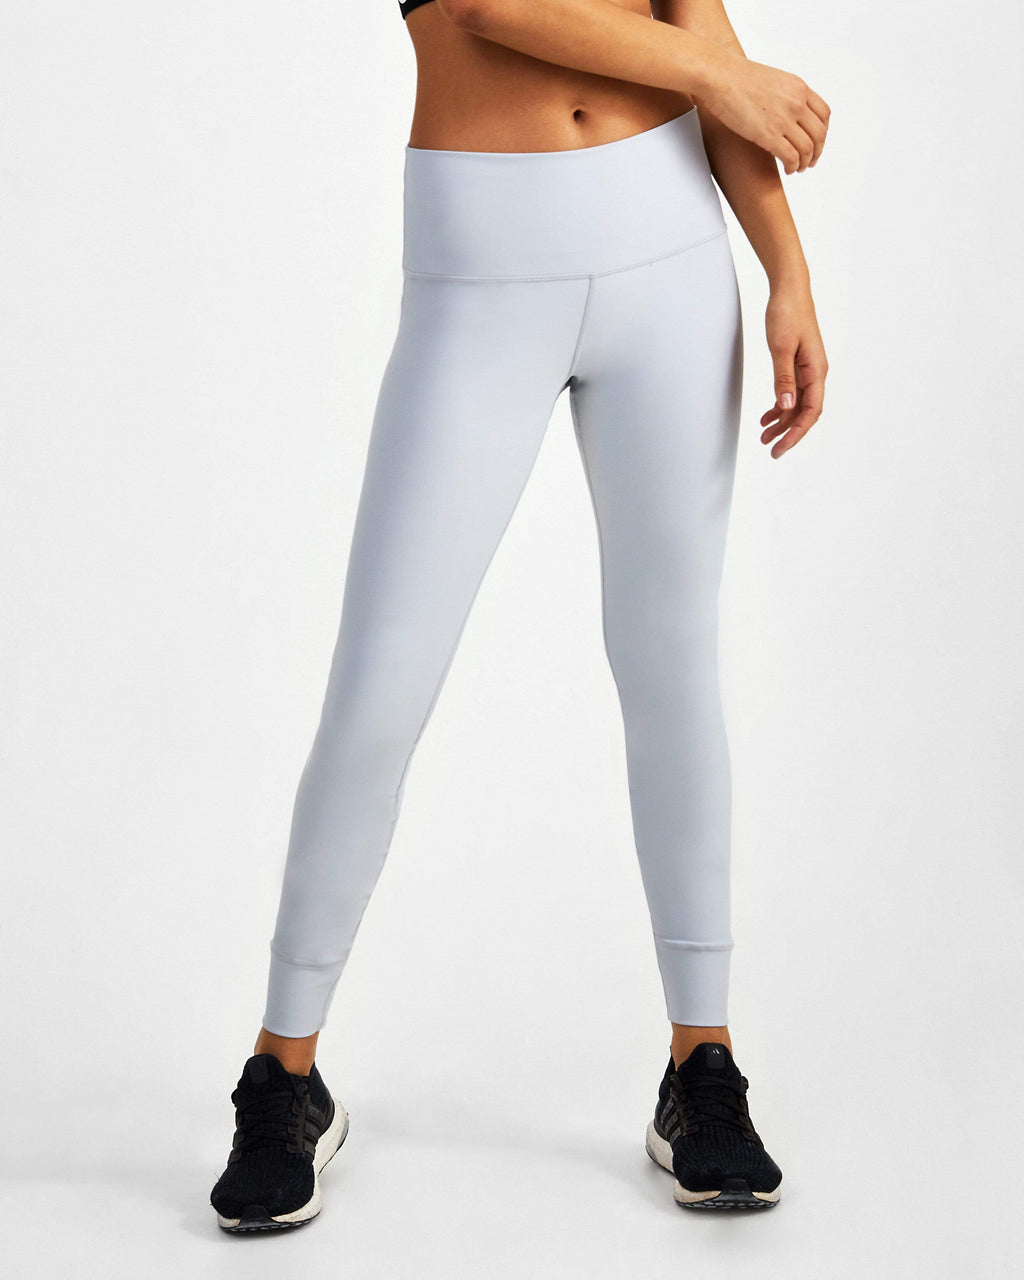 Chalk Contour Leggings - GYMVERSUS